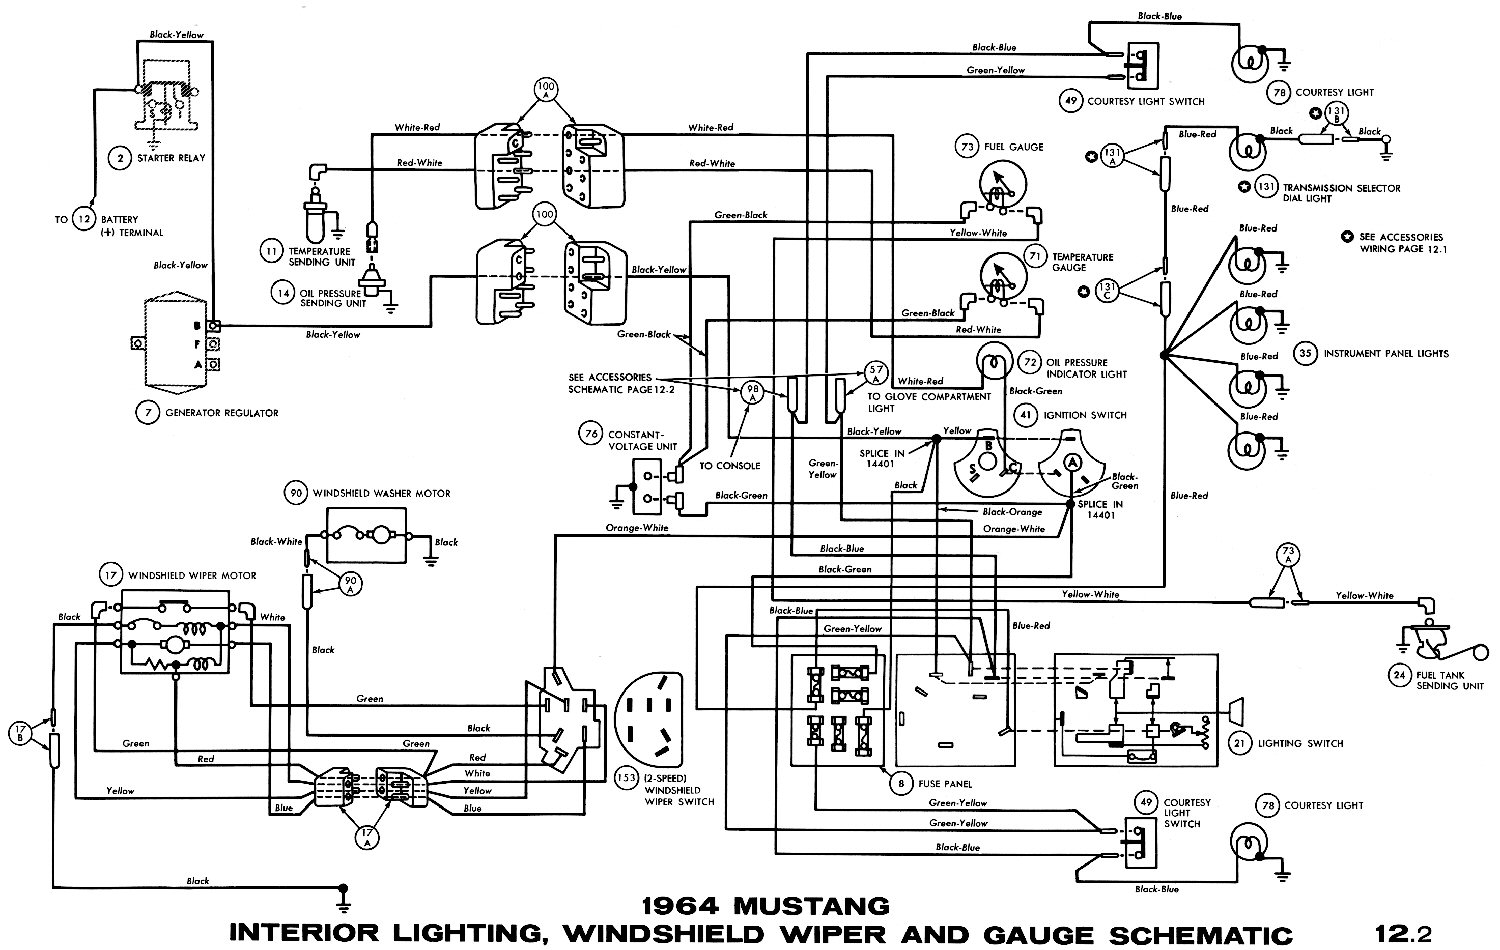 1964k 1964 mustang wiring diagrams average joe restoration 2015 mustang radio wiring diagram at readyjetset.co